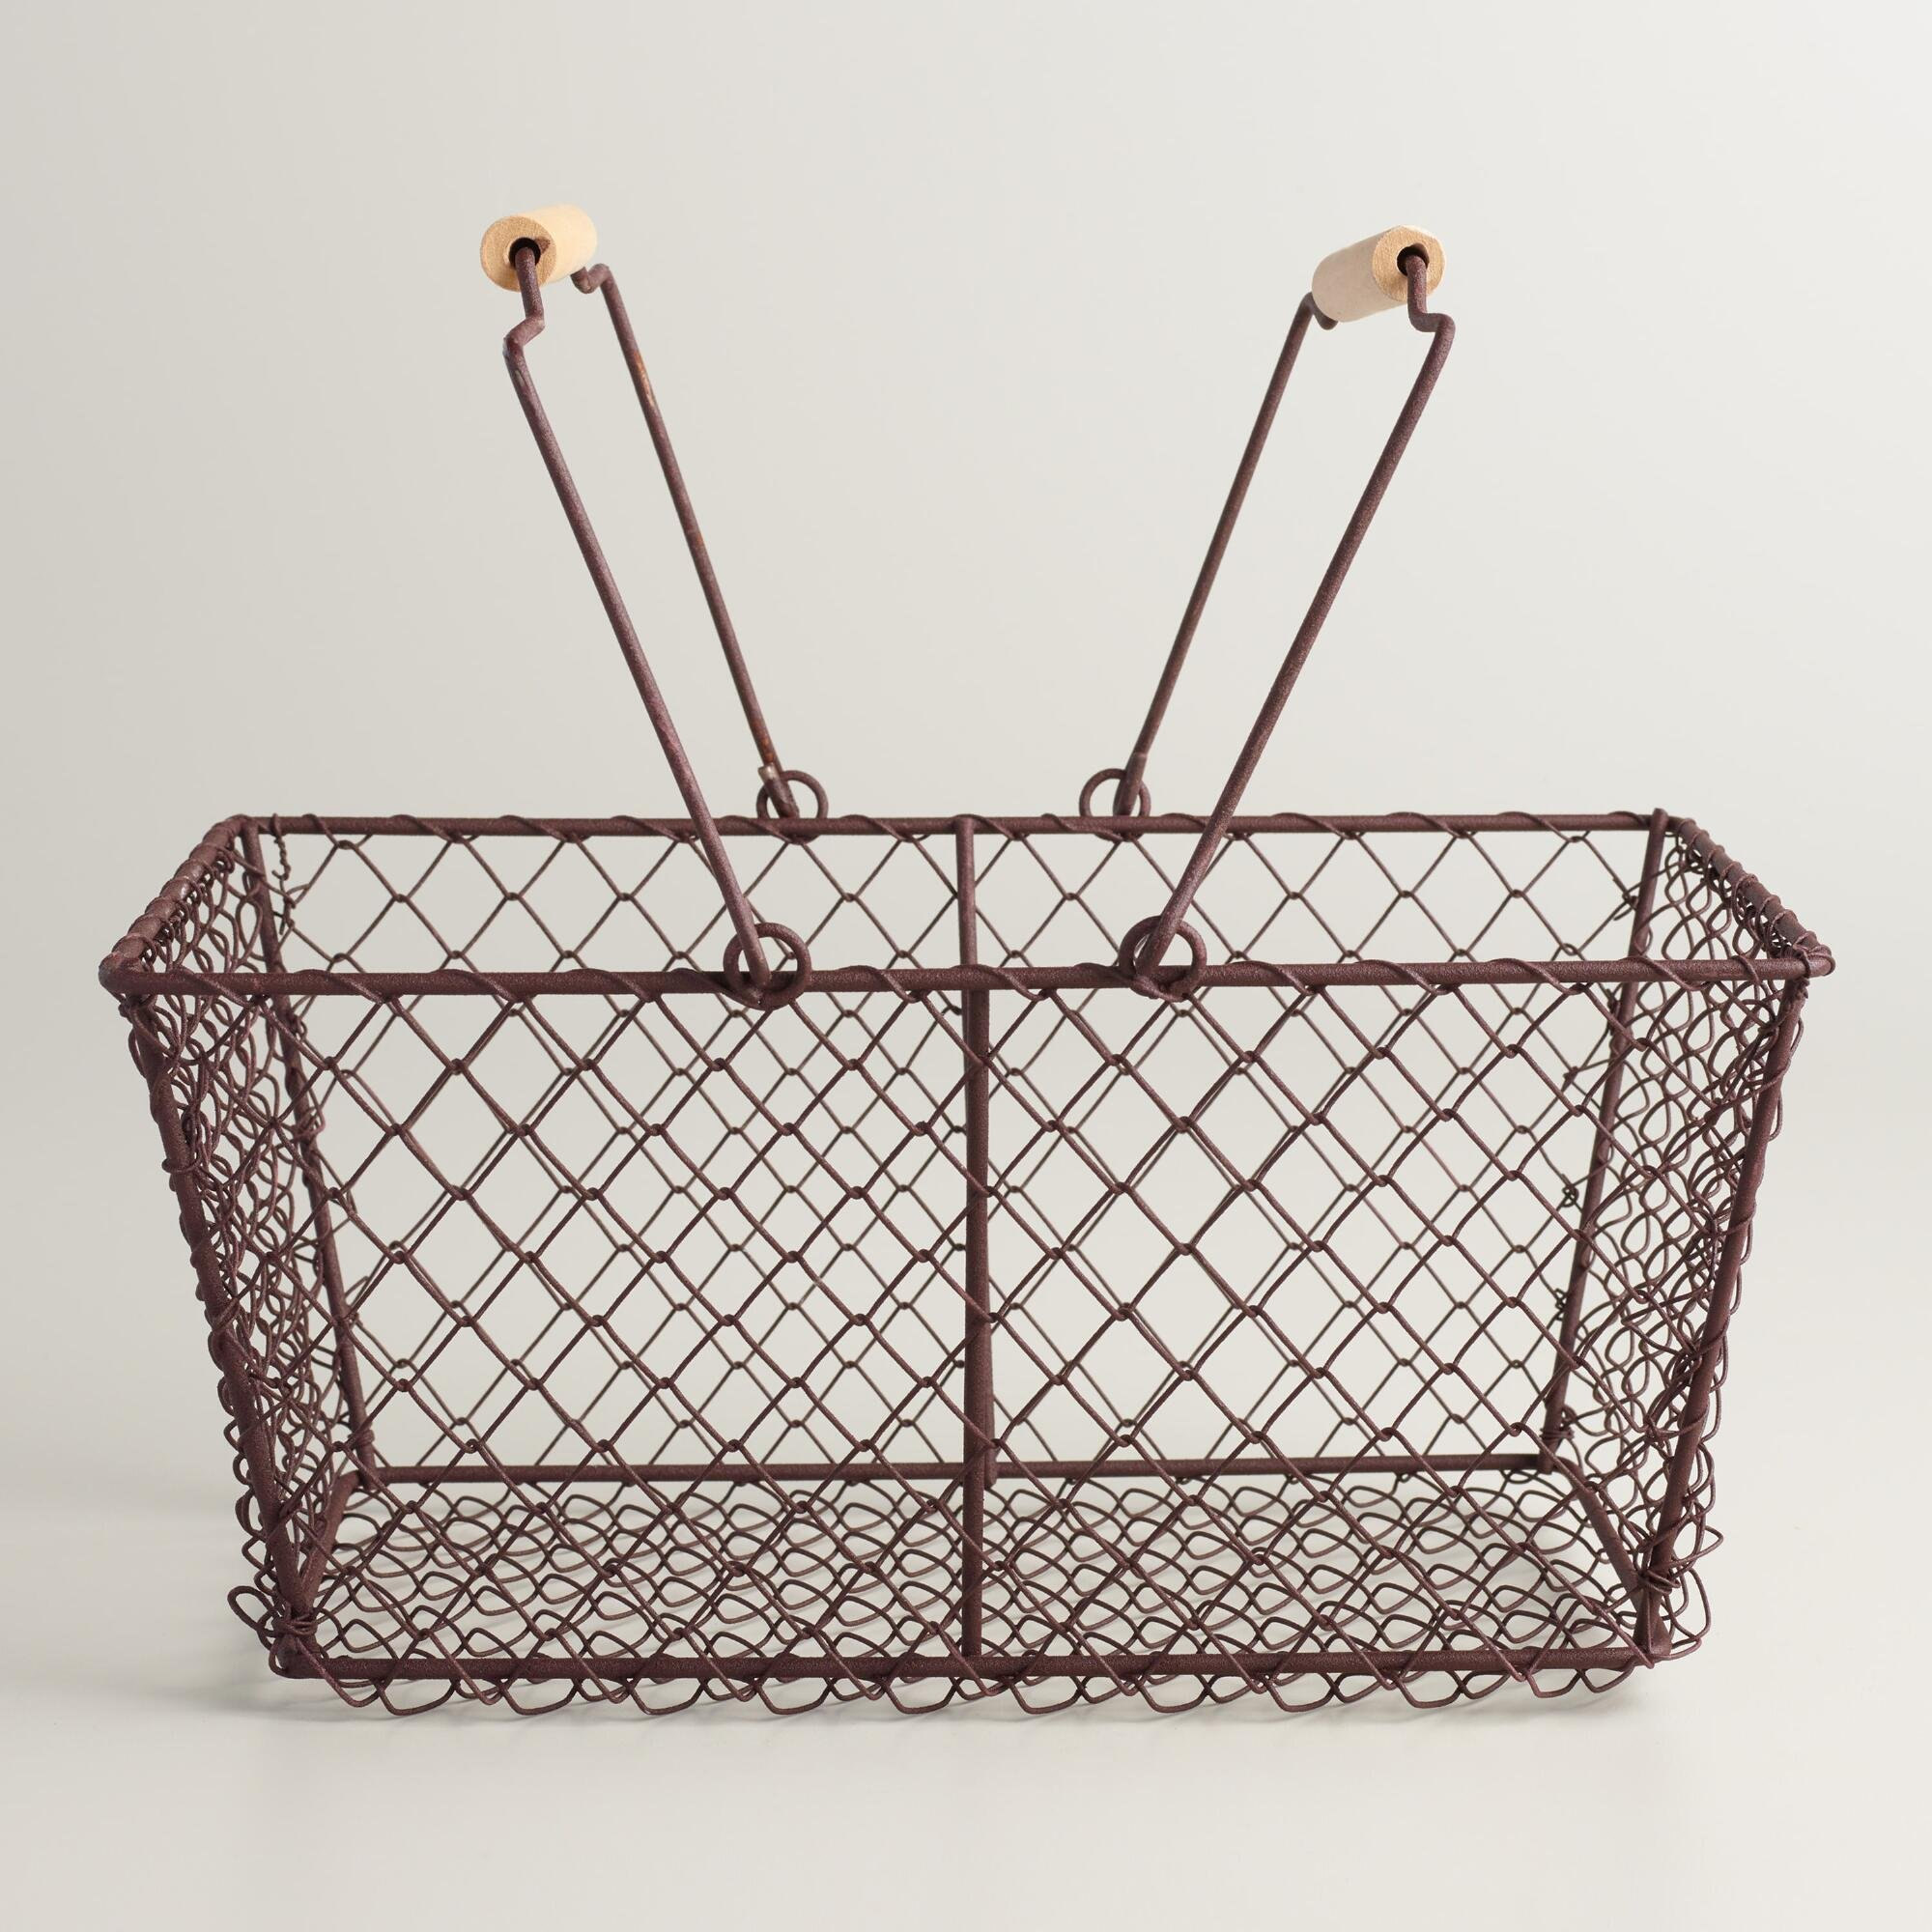 Rectangular Rustic Wire Basket 12''W x 5.5''D x 8''H by Rectangular Rustic Wire (Image #1)